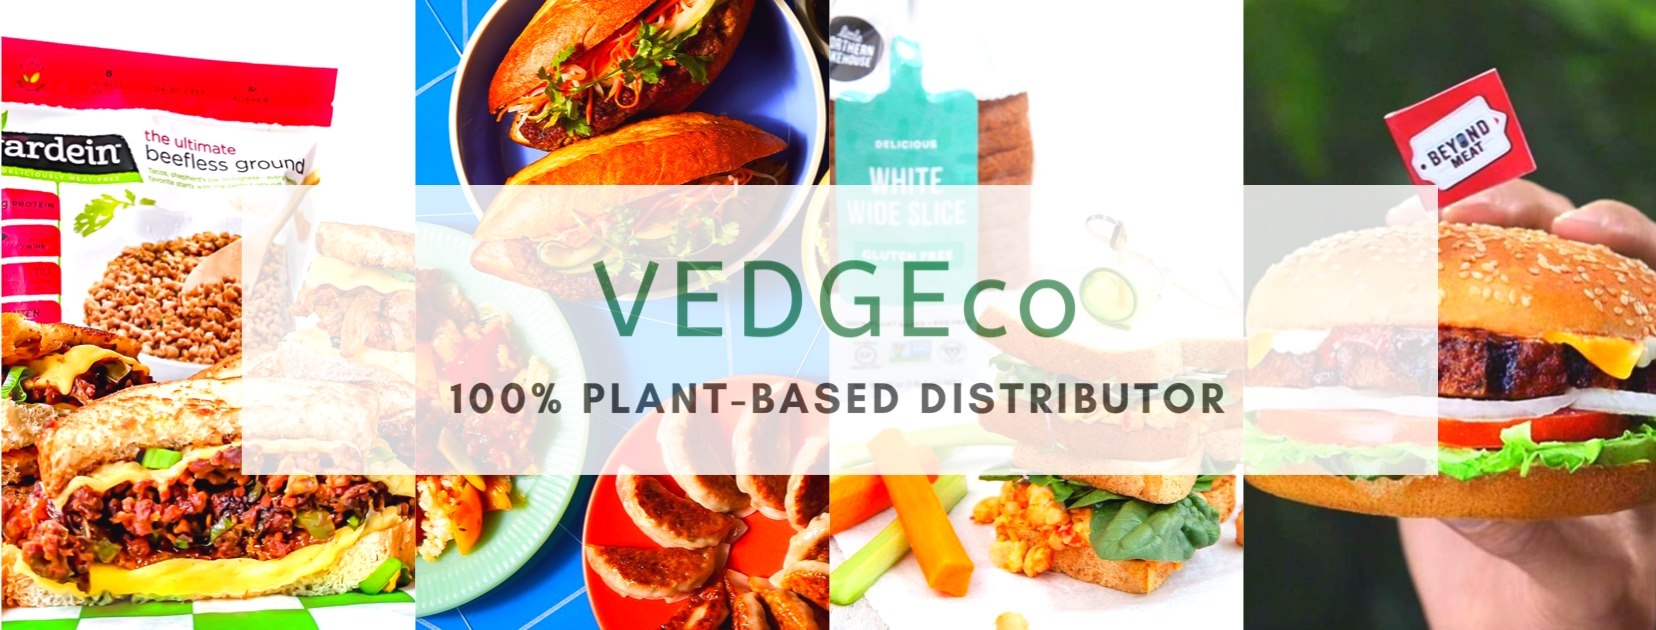 VEDGEco to Launch Nationwide Bulk Plant-Based Food Delivery Service